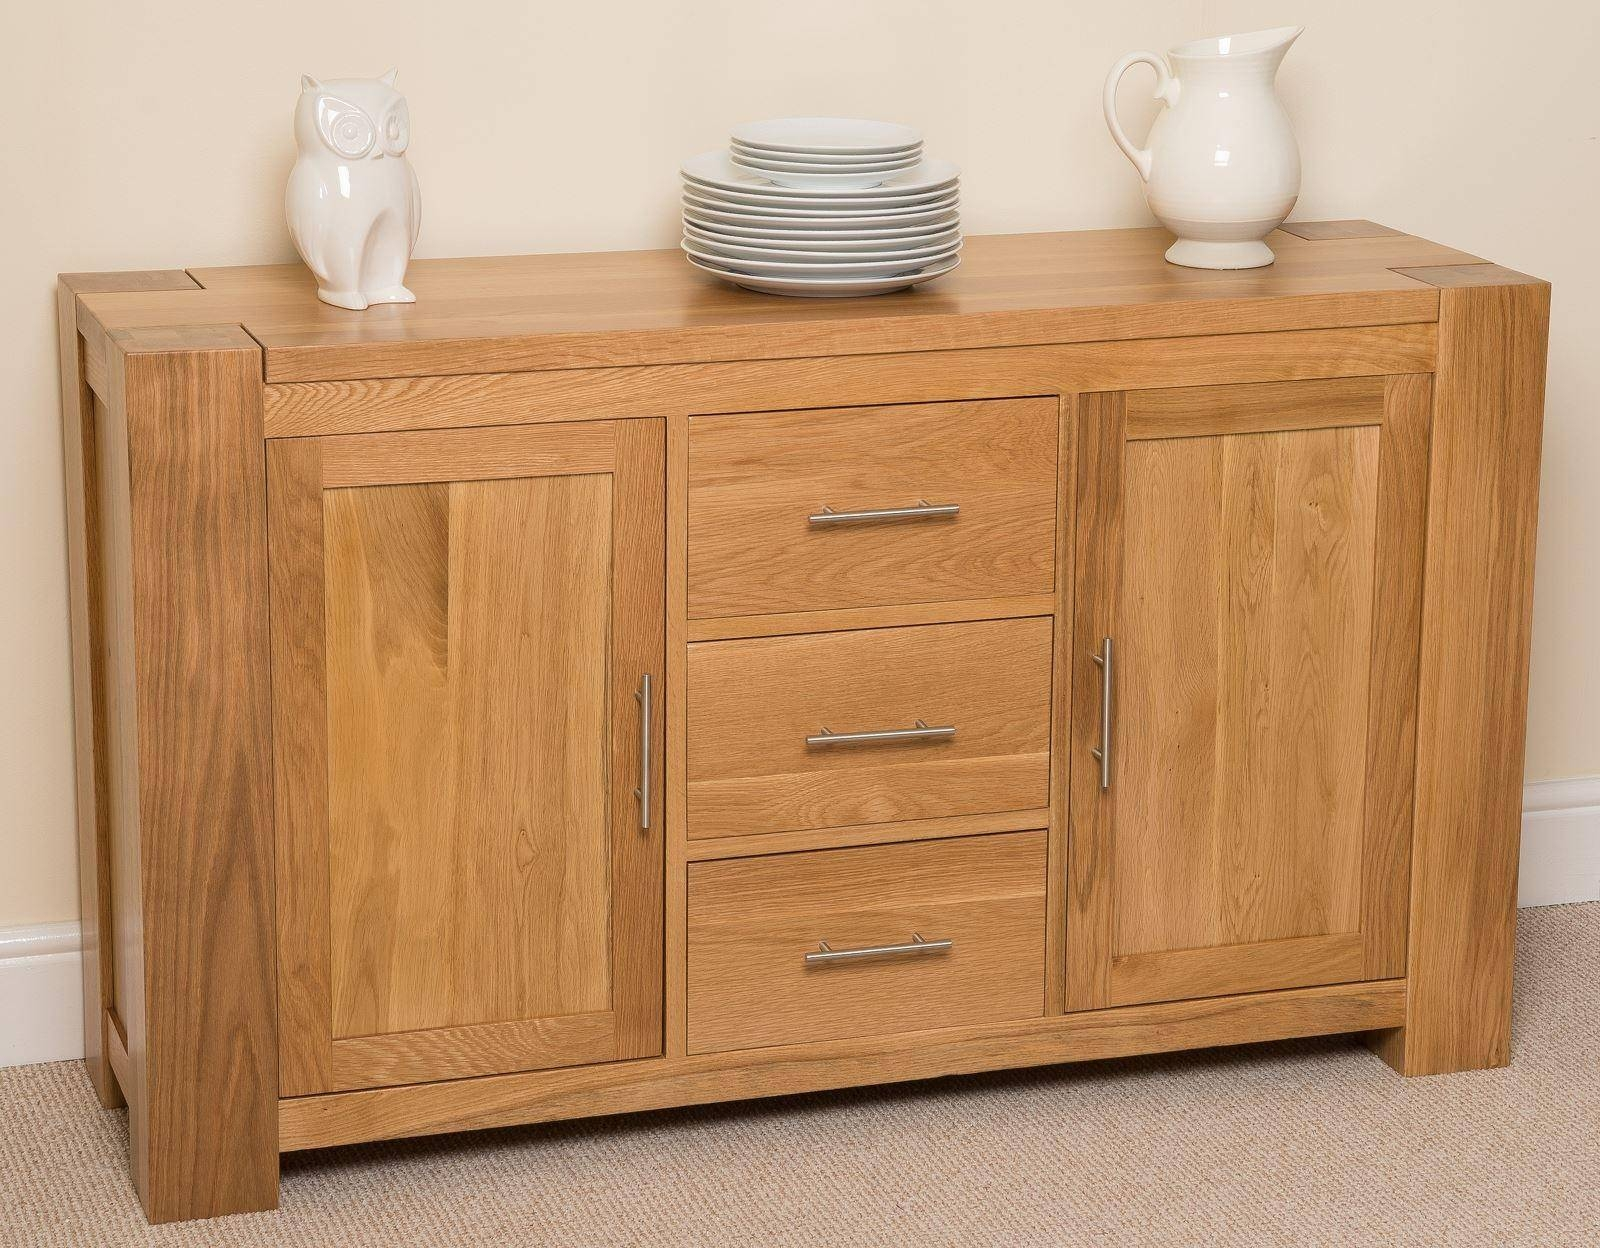 Kuba Solid Large Oak Sideboard | Free Uk Delivery in Solid Oak Sideboards (Image 8 of 15)